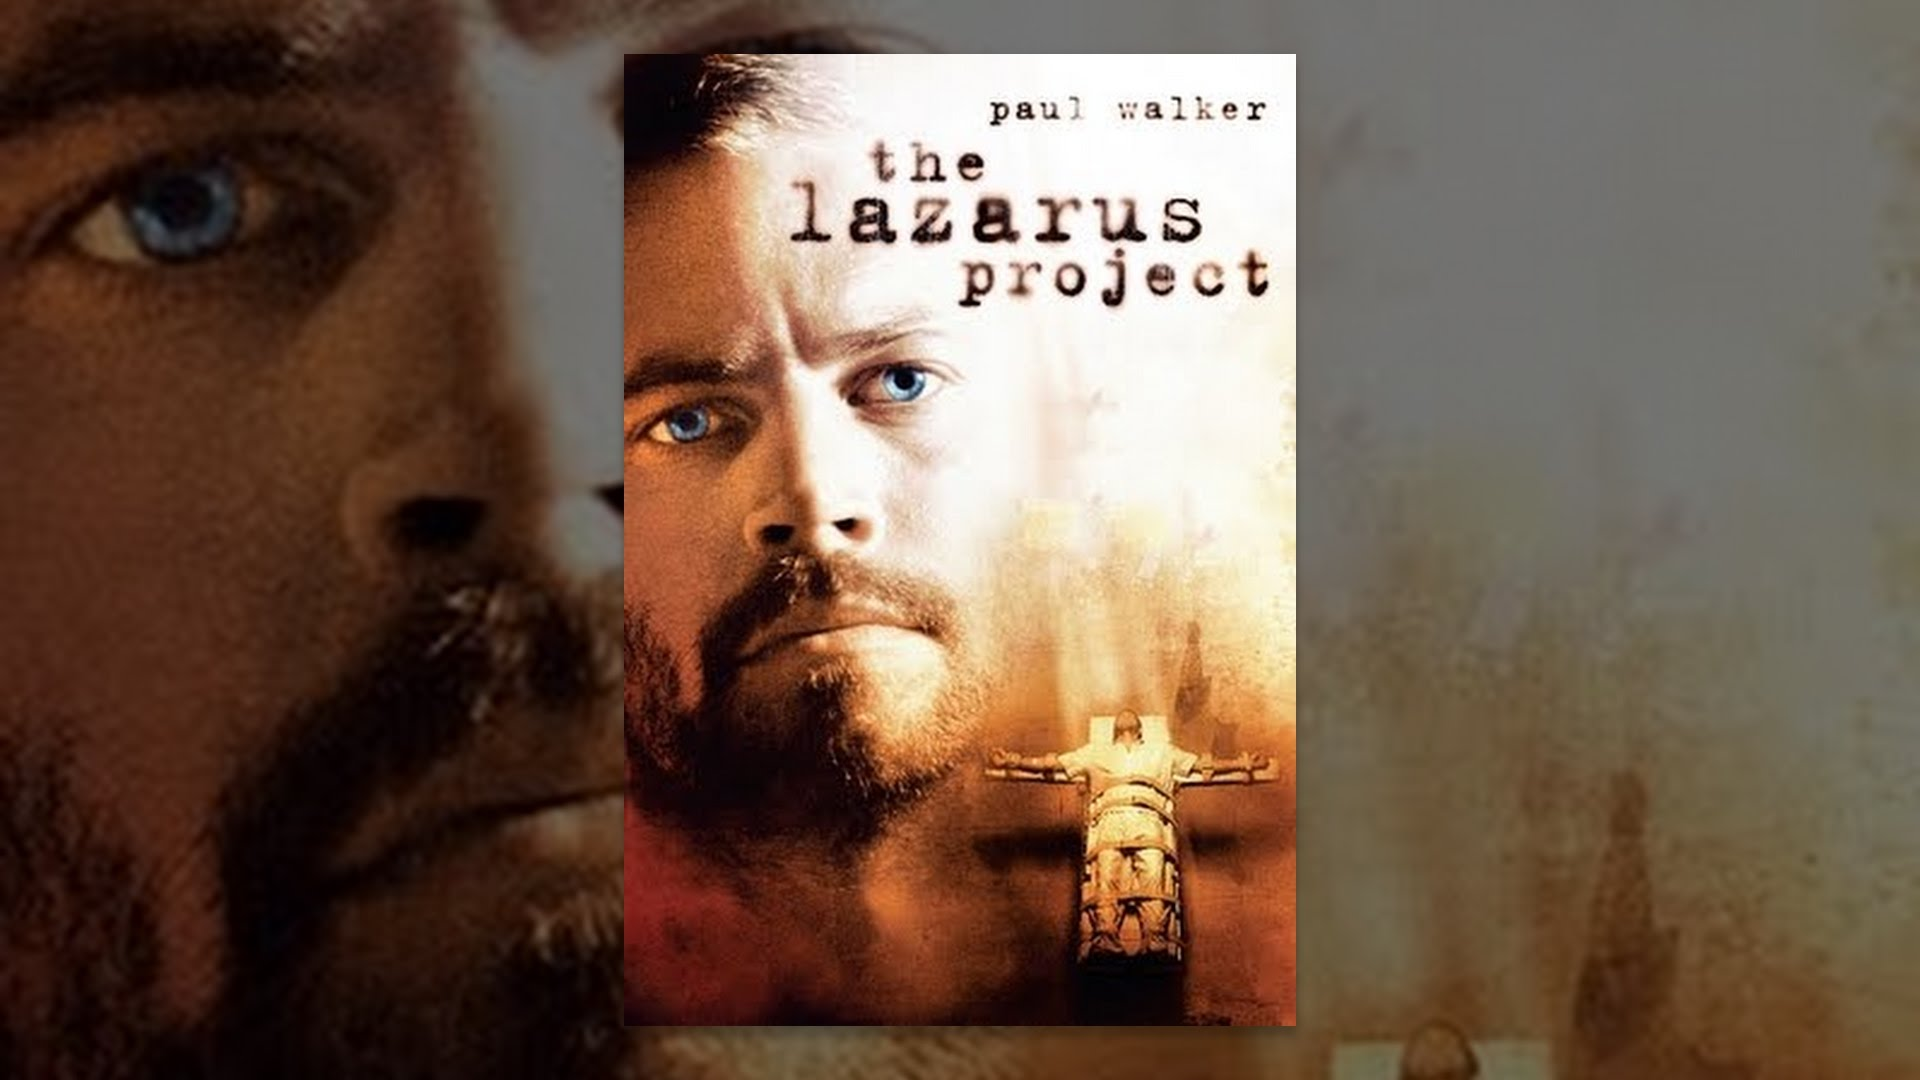 lazarus project The lazarus project - a death-row inmate (paul walker) searches for the truth after he mysteriously awakes in a psychiatric hospital.